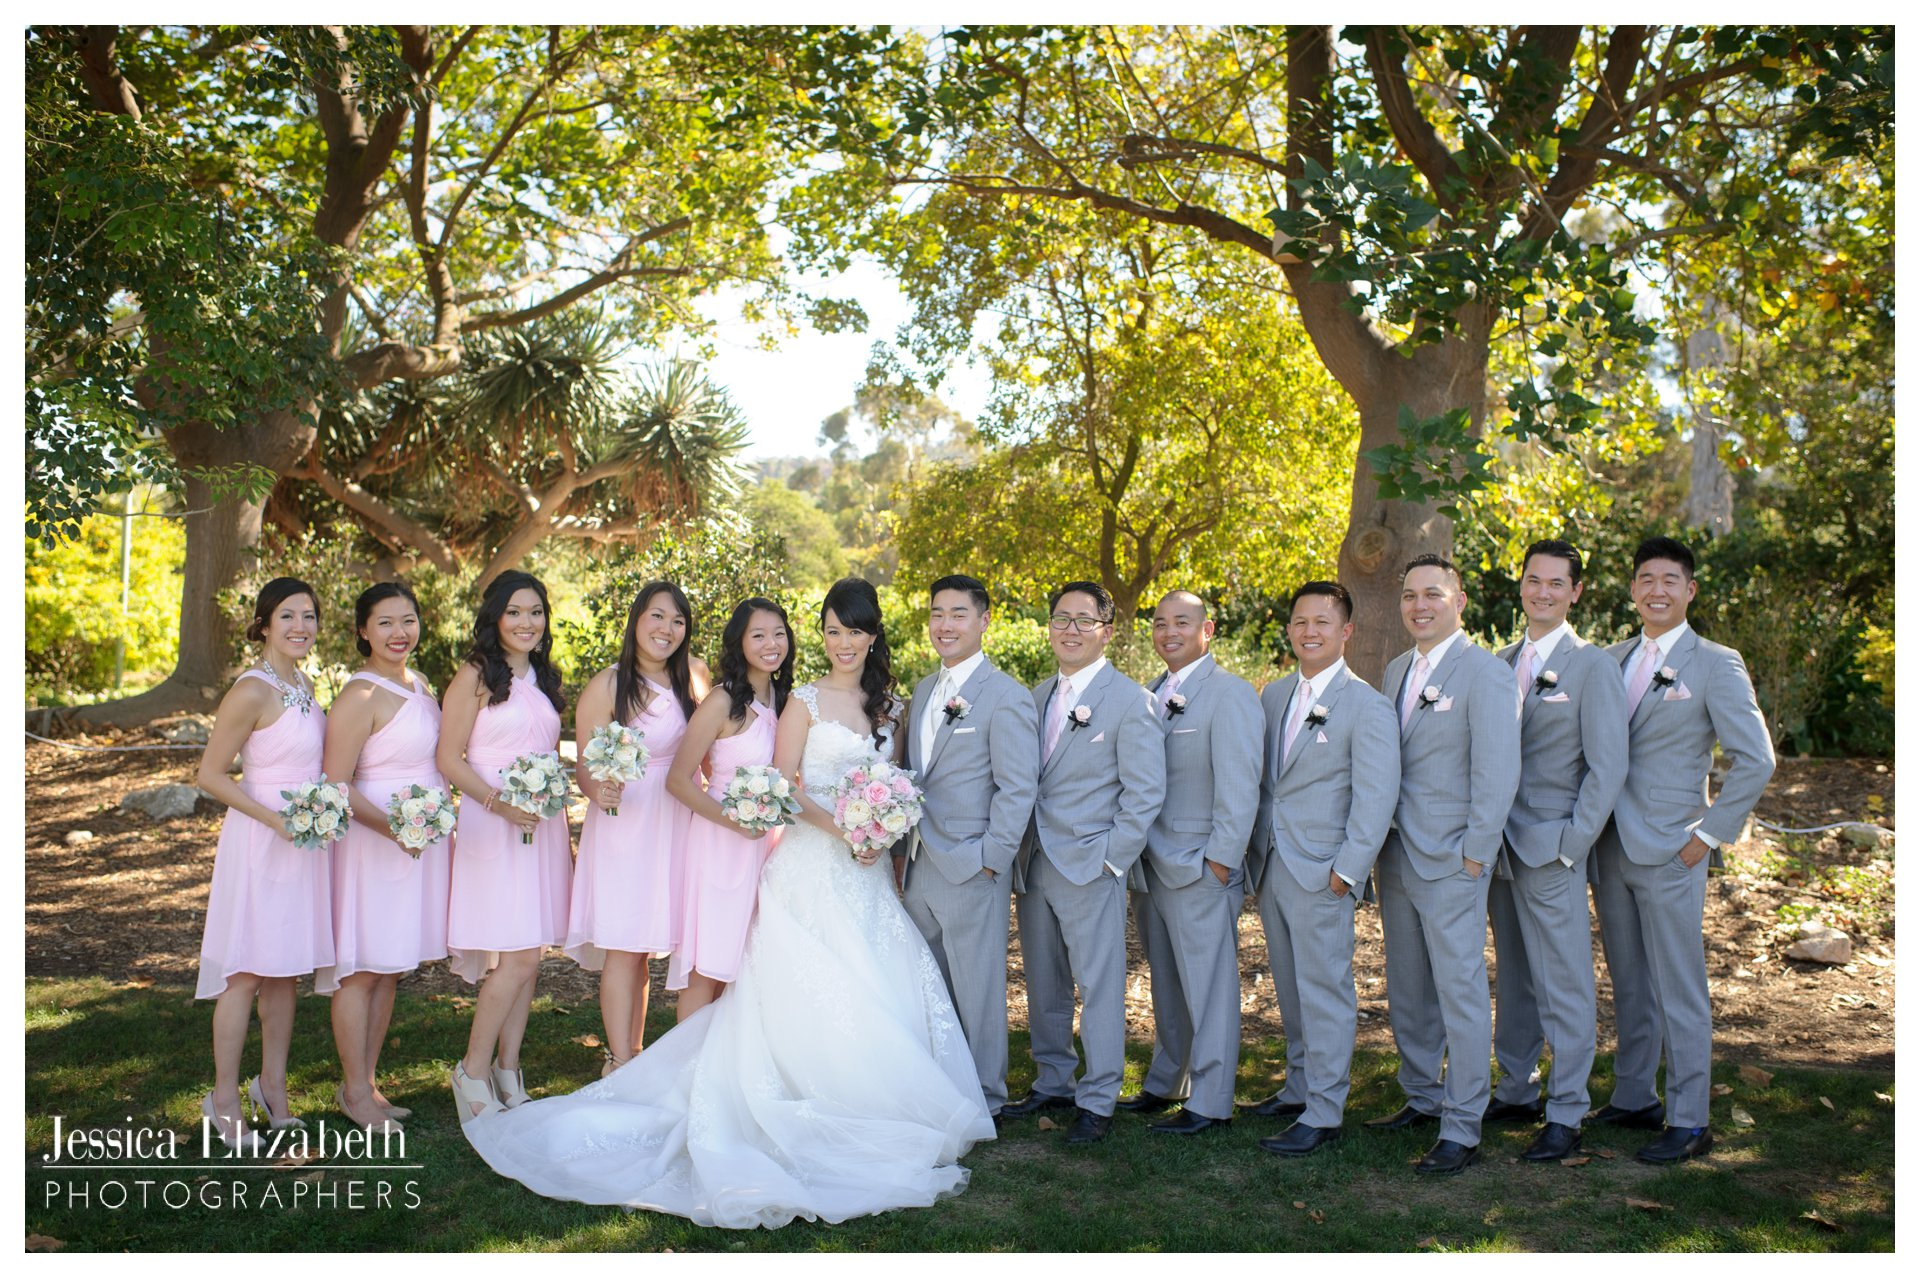 06-South-Coast-Botanic-Garden-Palos-Verdes-Wedding-Photography-by-Jessica-Elizabeth.jpg